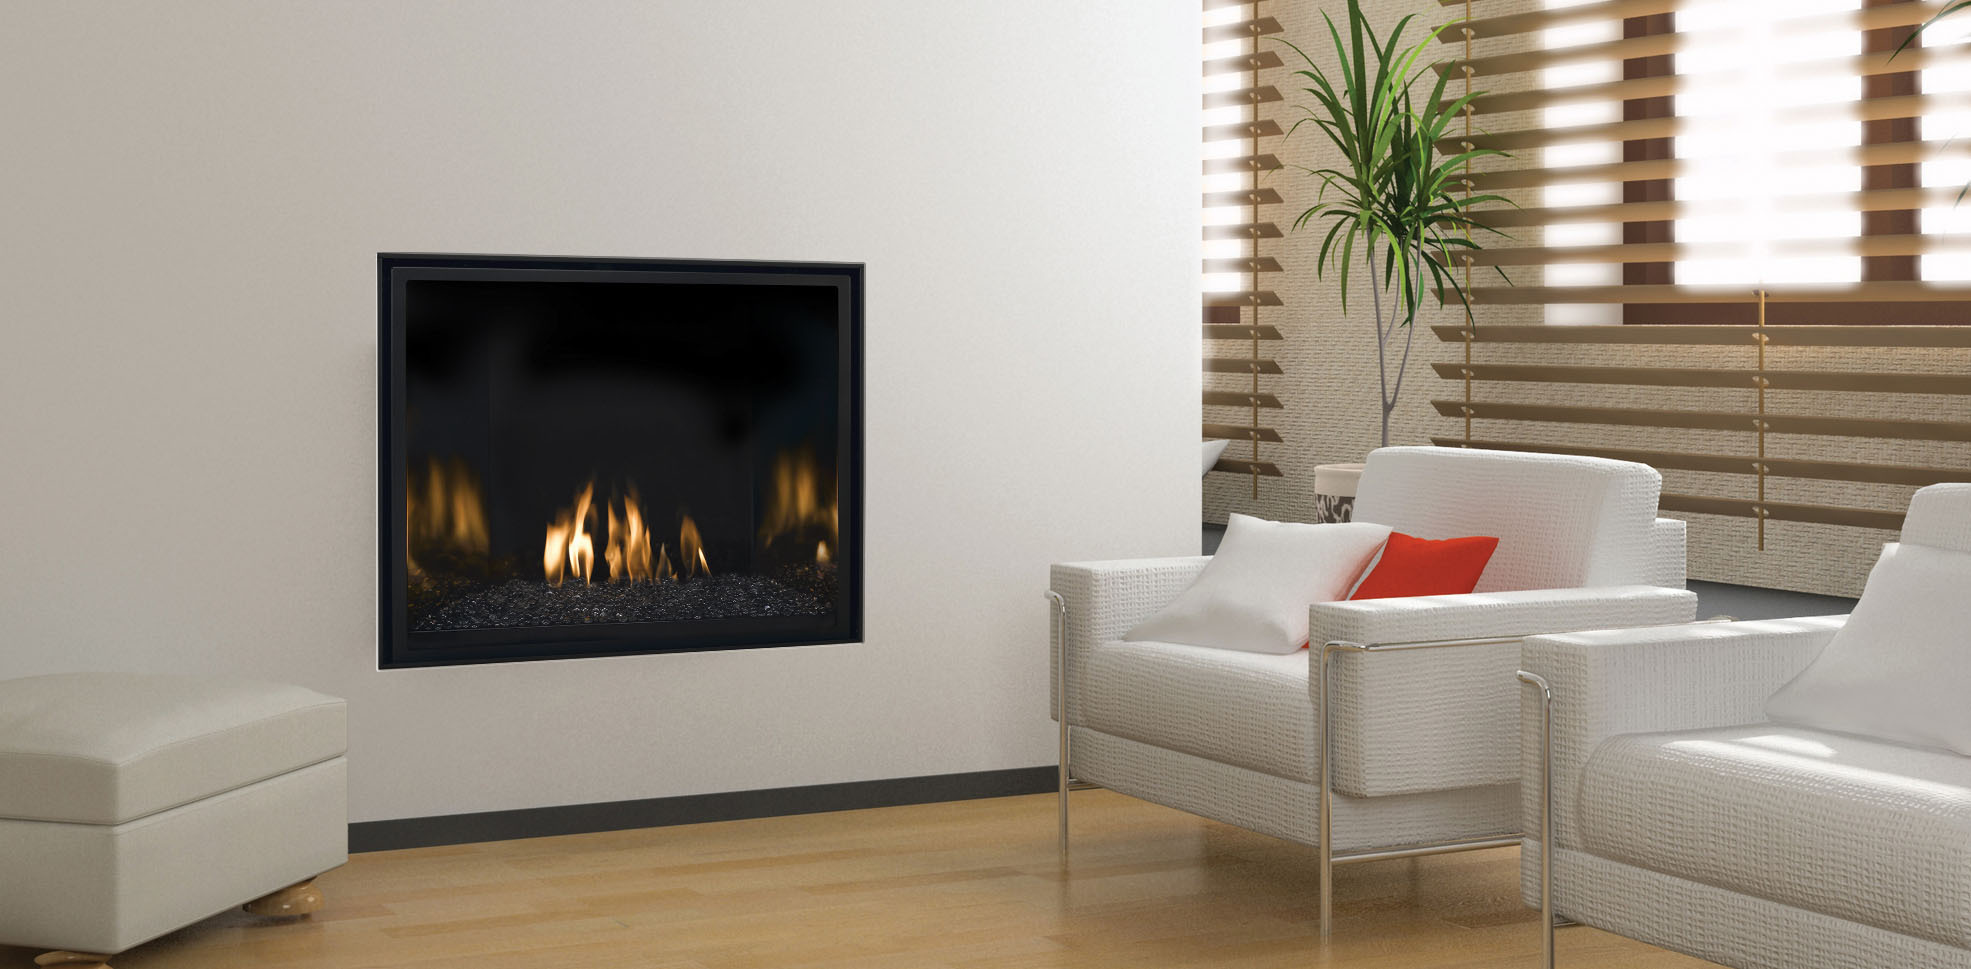 Contemporary Gas Fireplace - Mendota FV41m